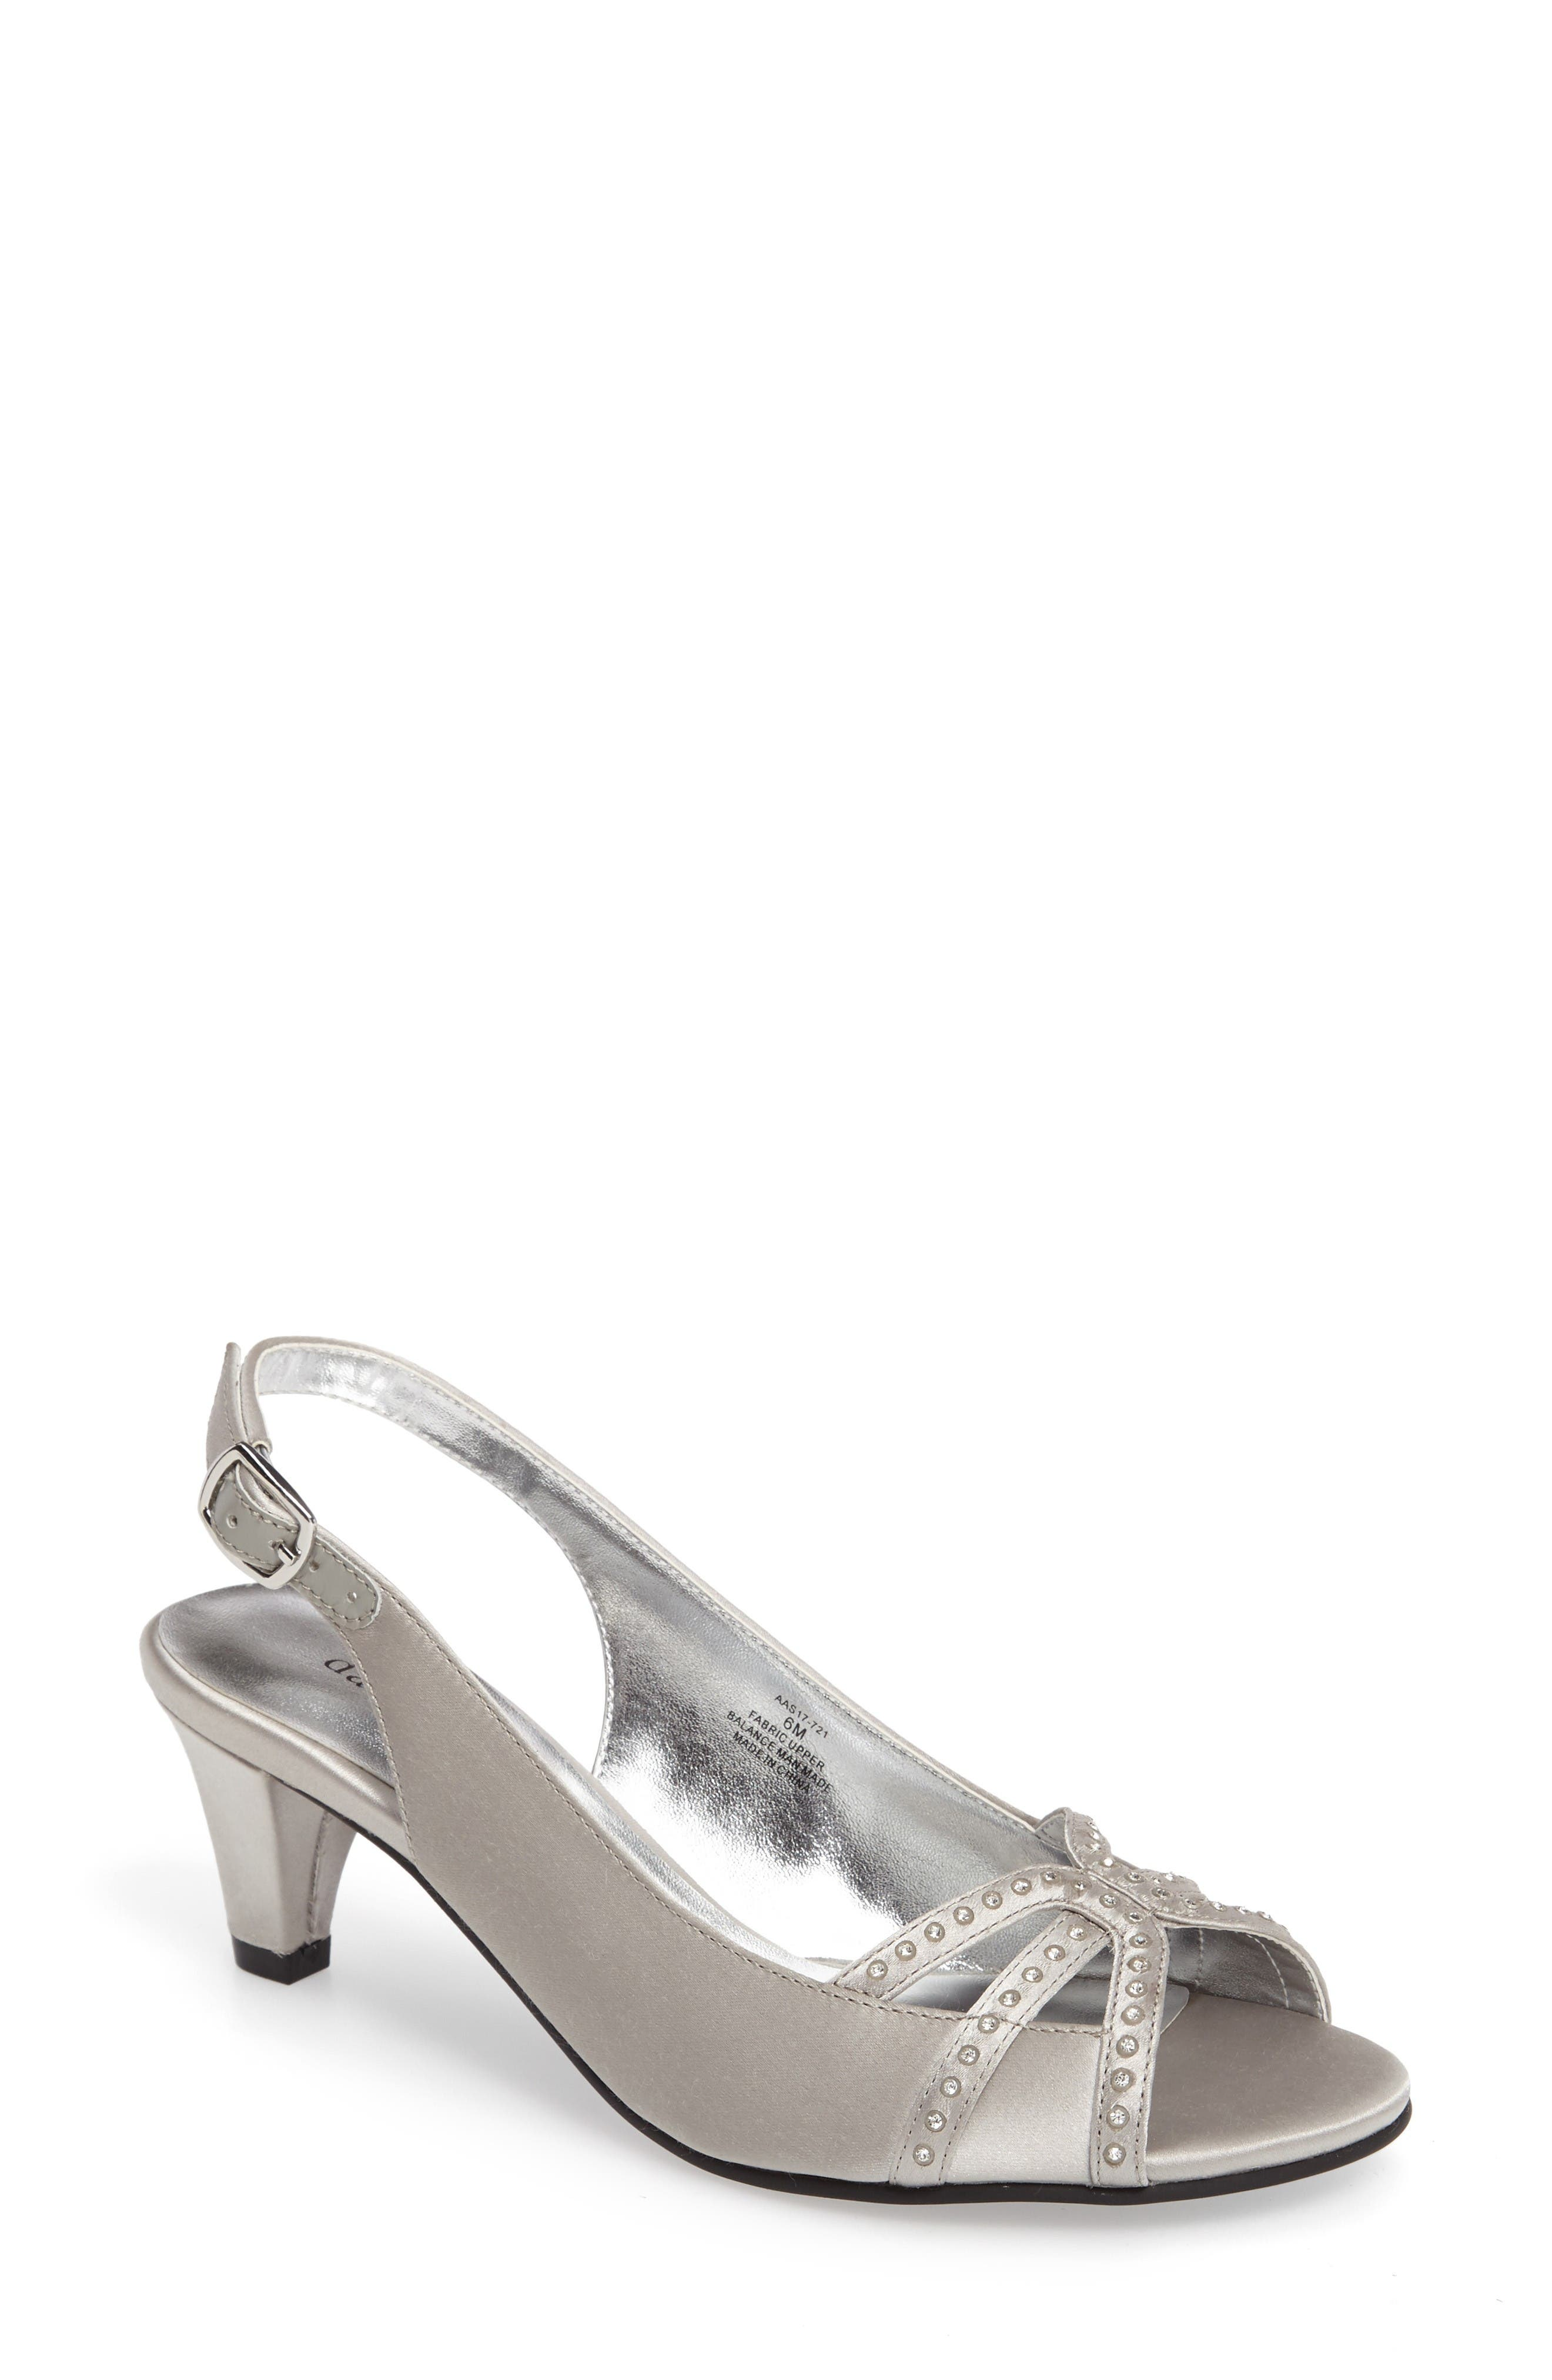 DAVID TATE Regal Embellished Slingback Sandal